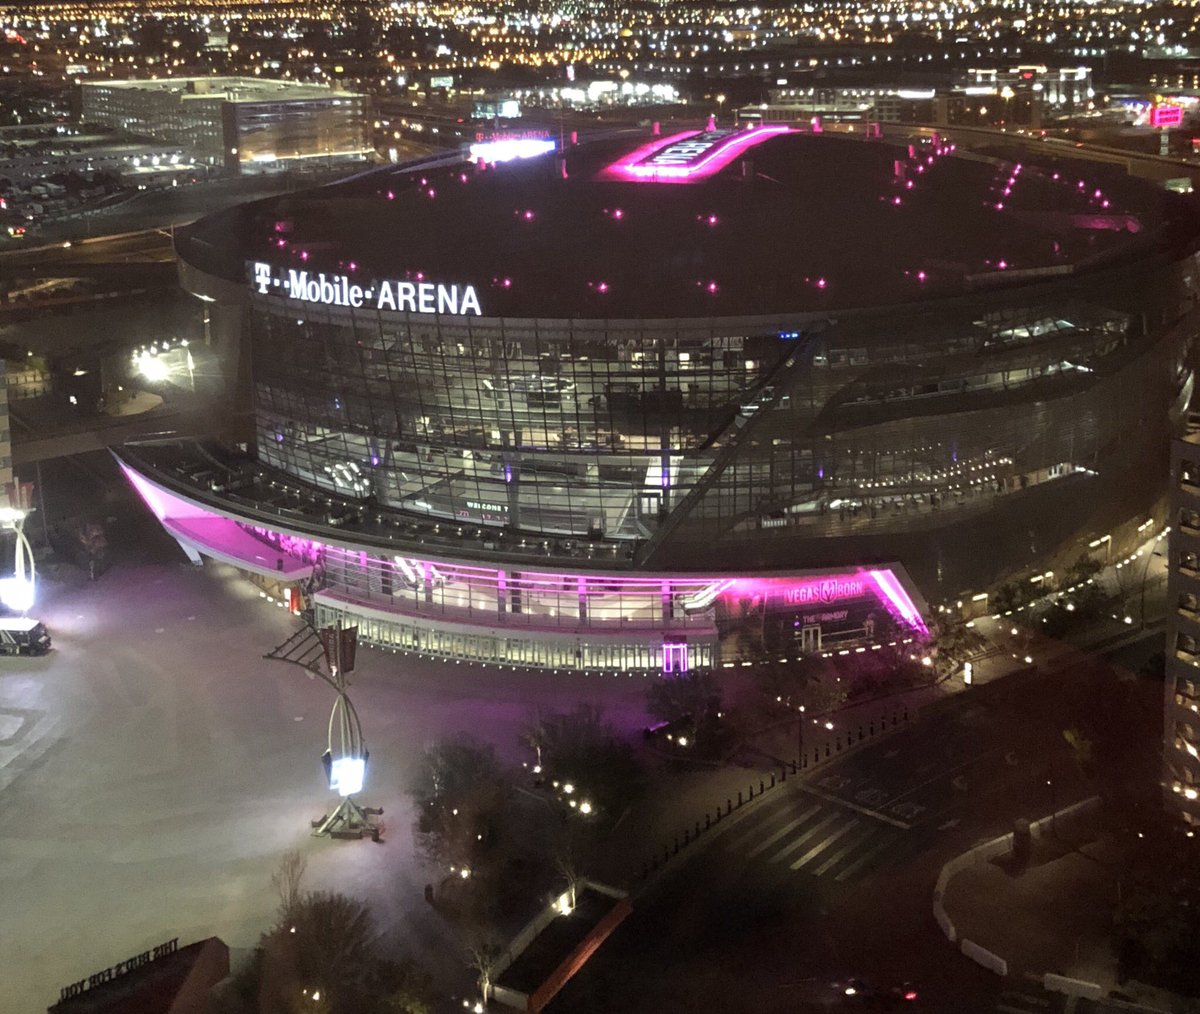 View from my room! Can't wait for @ufc 232 Saturday night! Oh wait... https://t.co/MN6Ocdijpn